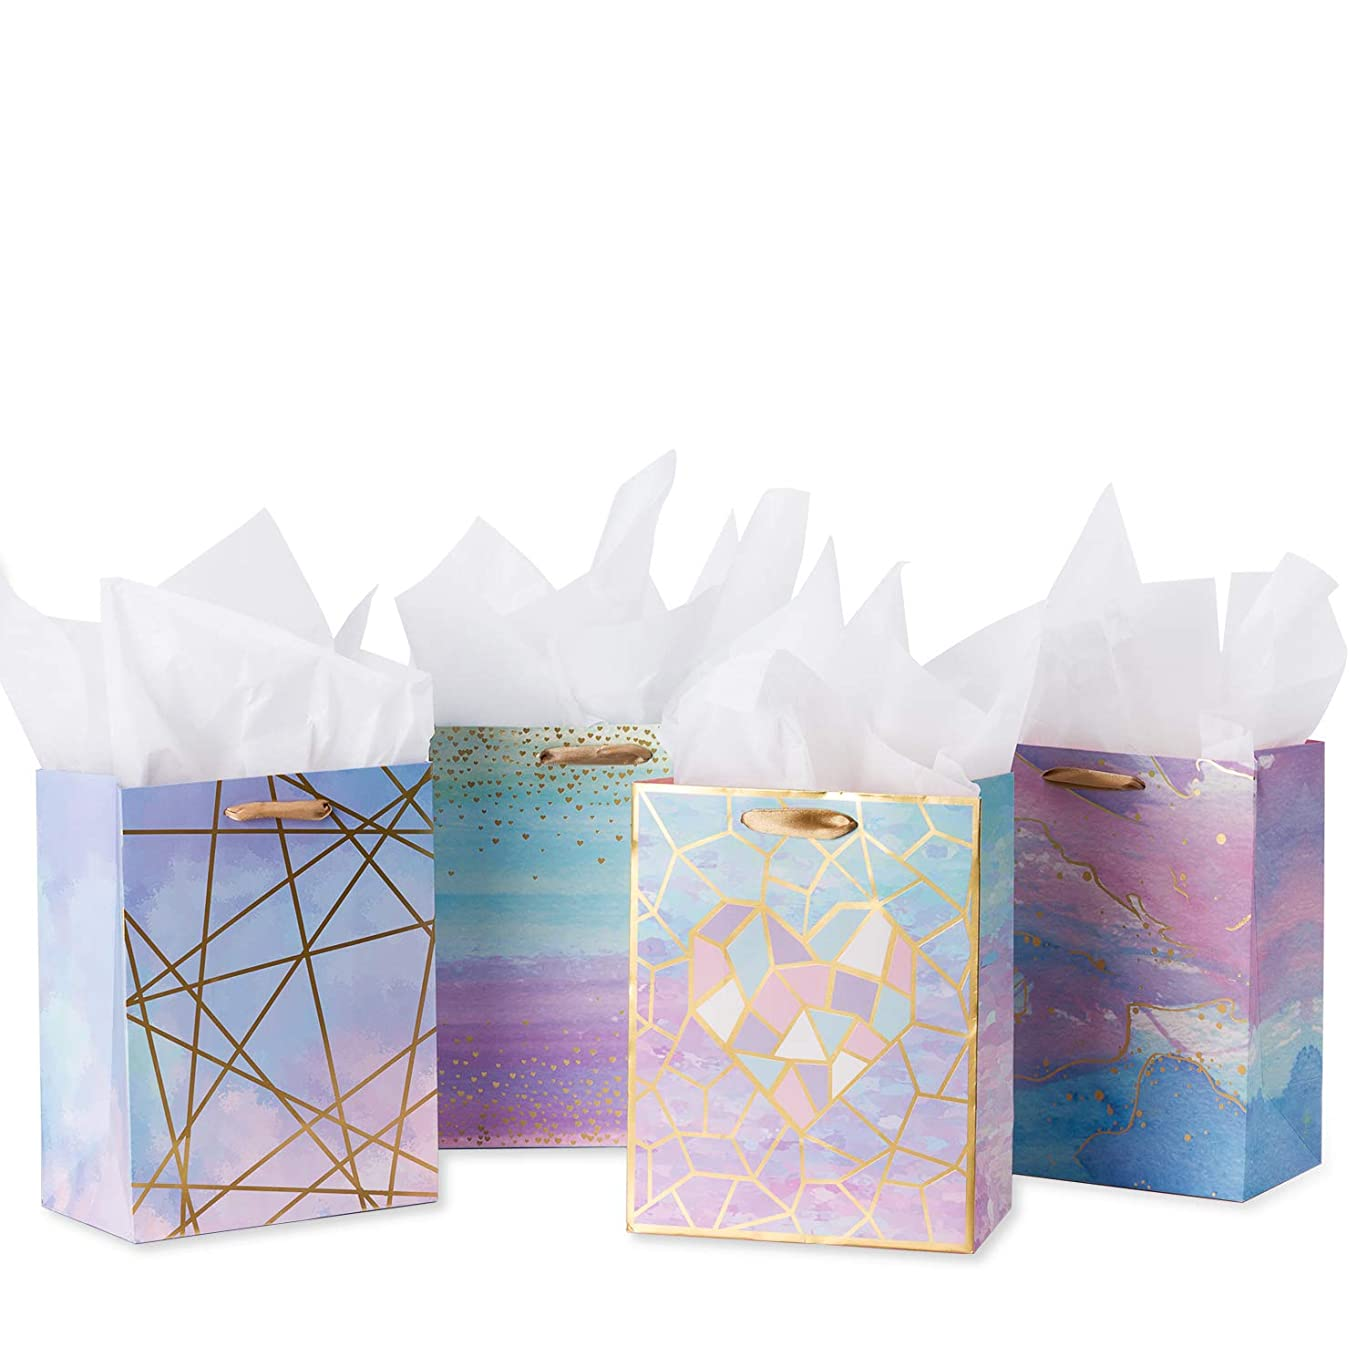 Loveinside Medium Size Gift Bags-Coloful Marble Pattern Gift Bag with Tissue Paper for Shopping,Parties,Wedding, Baby Shower, Craft-4 Pack-7